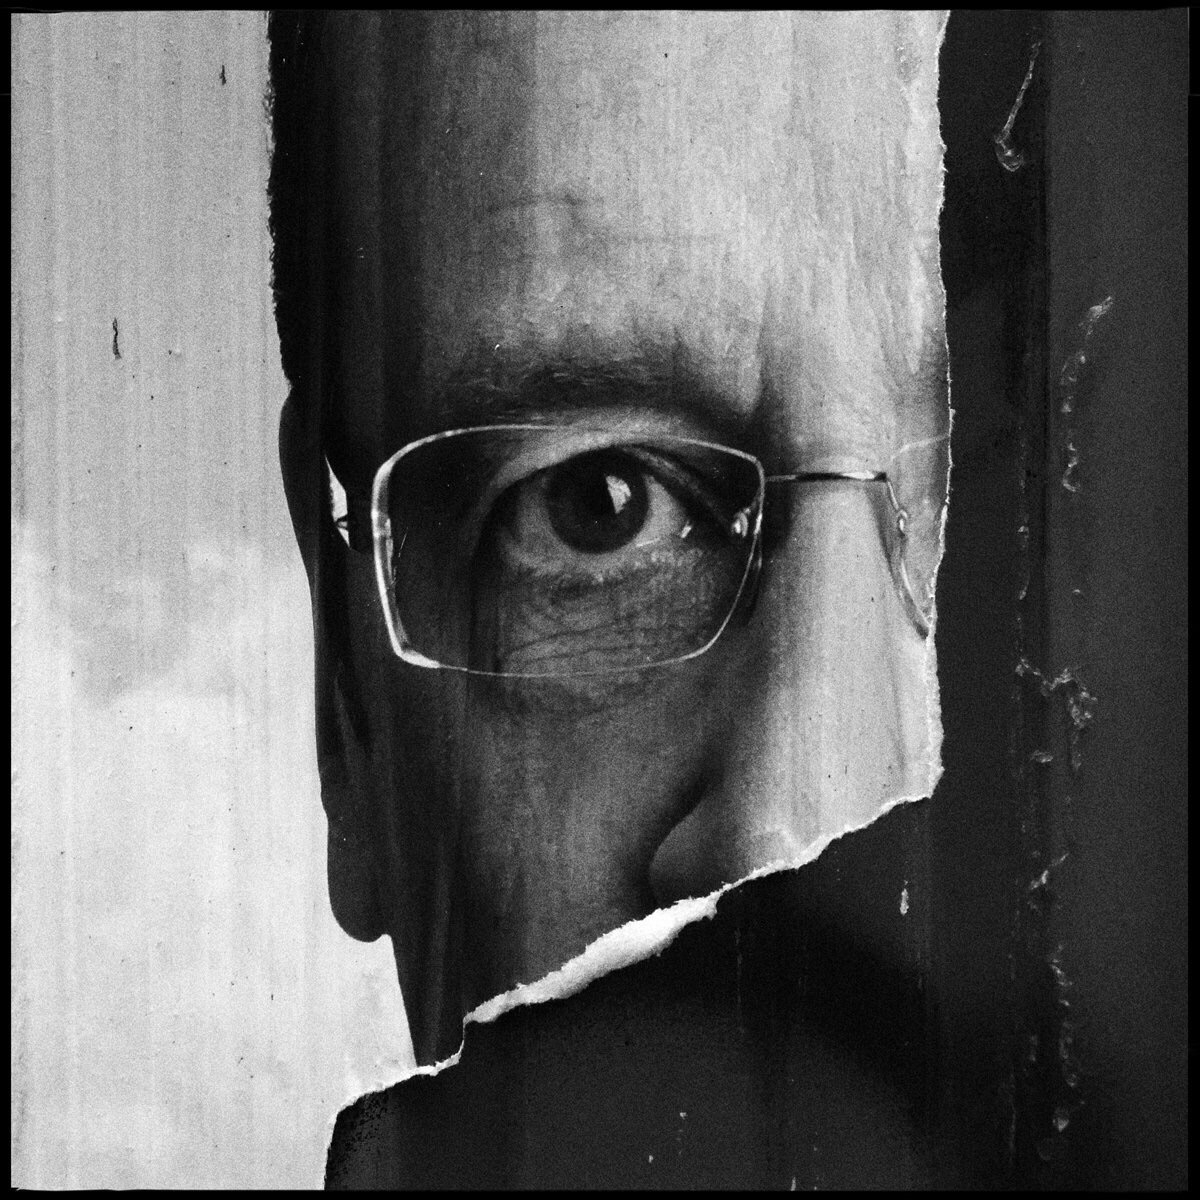 Snapping footsteps Chapter - ElliottErwitt. - danhayon | ello